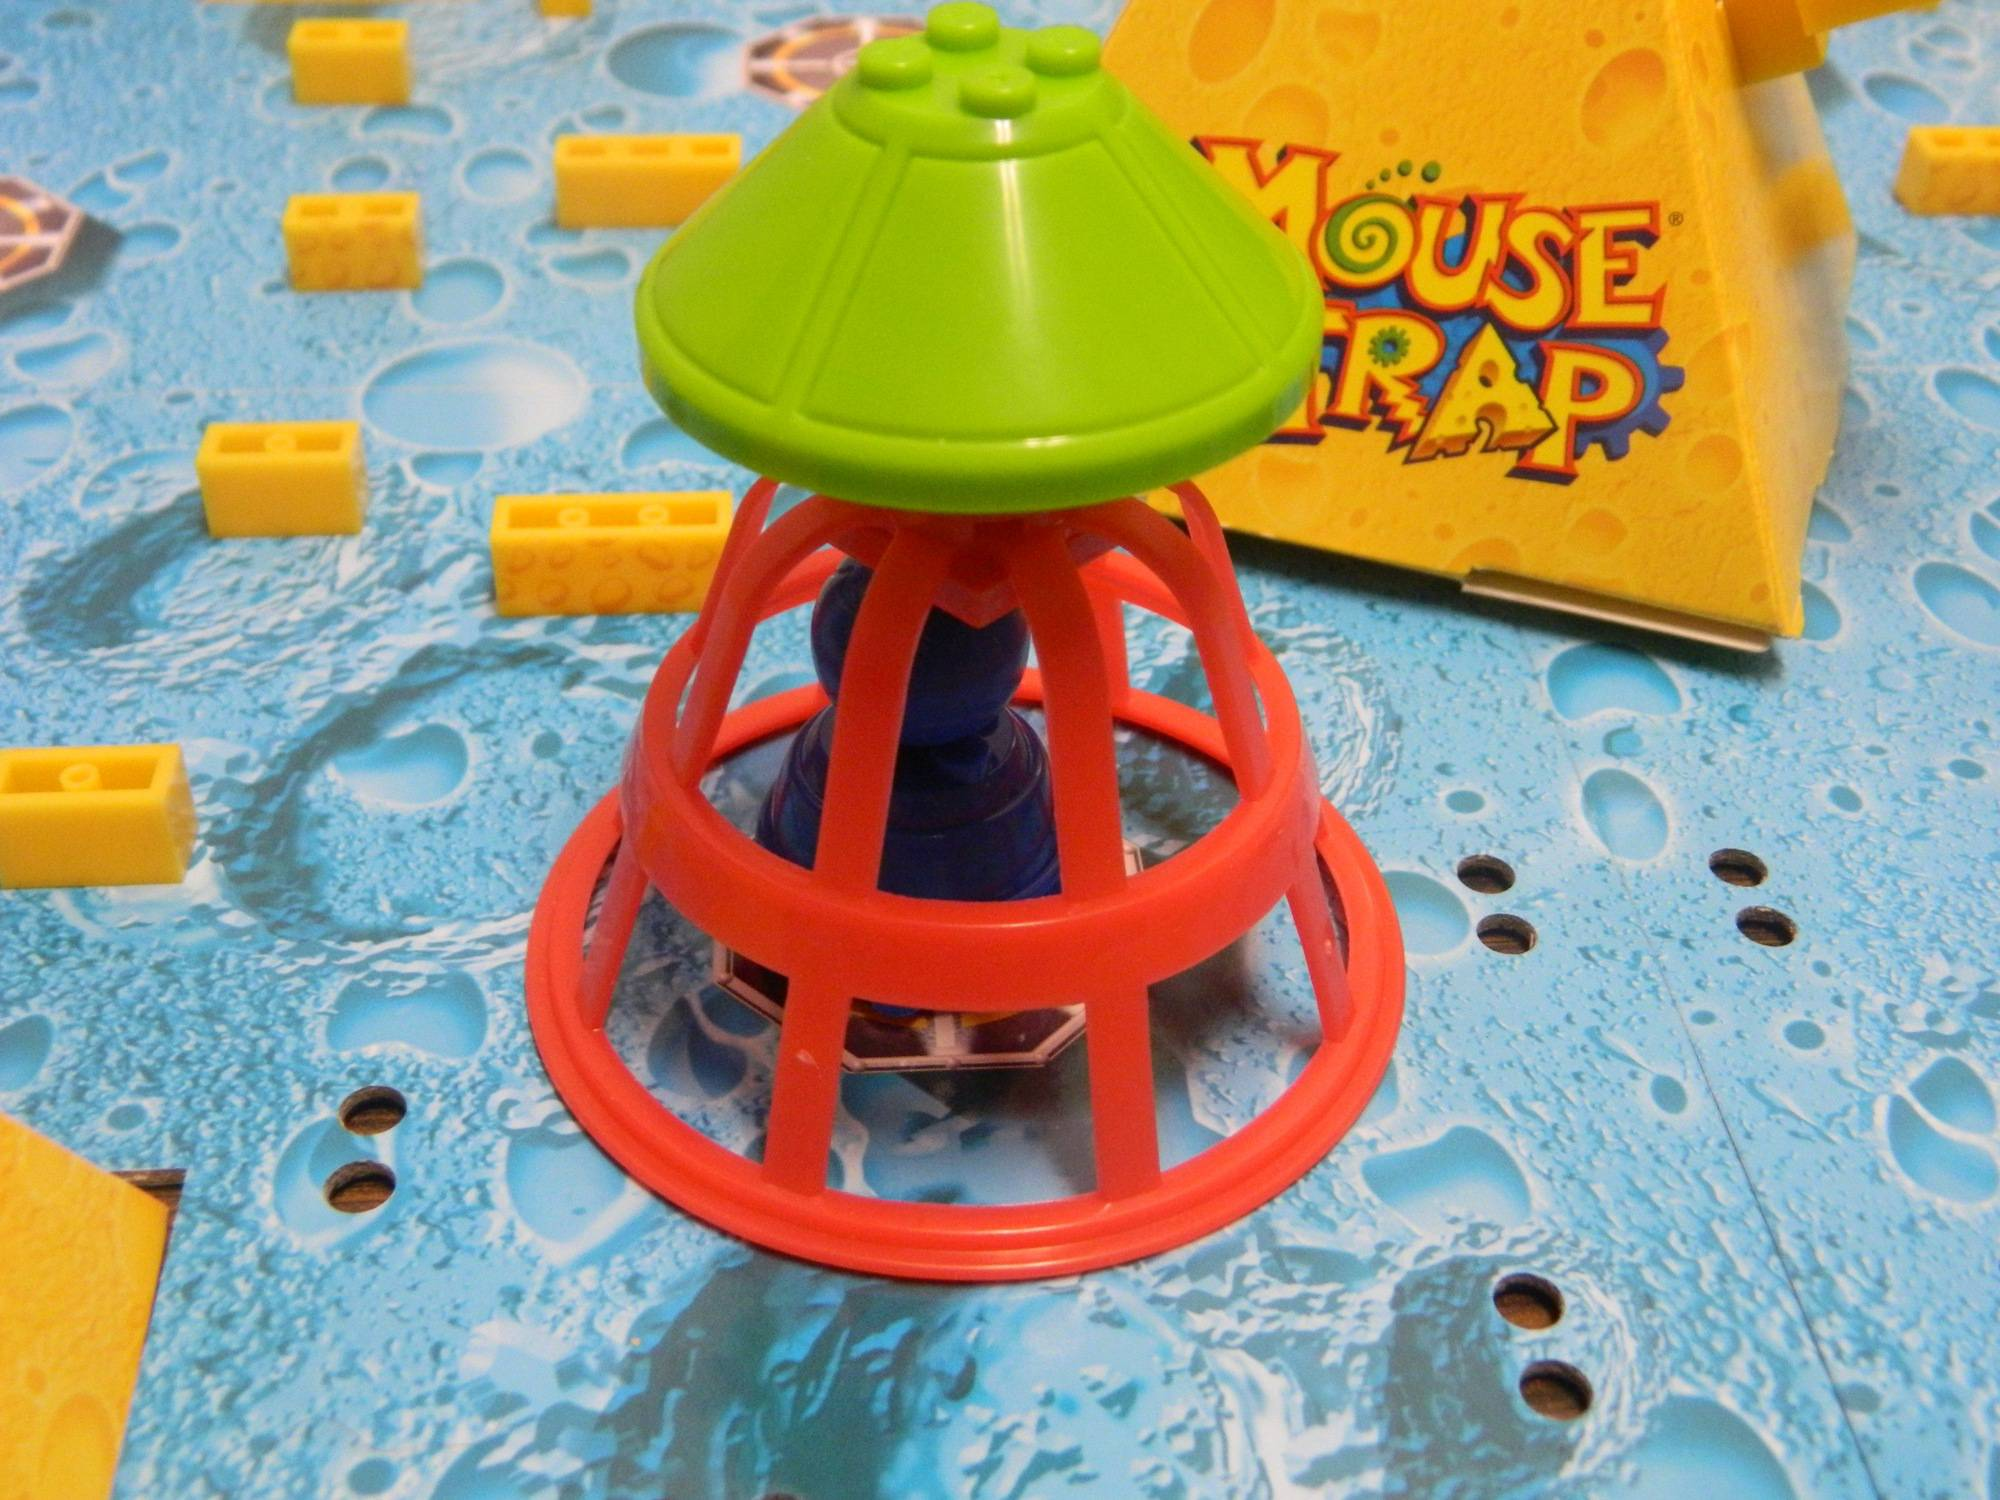 U Build Mouse Trap Board Game Review And Rules Geeky Hobbies